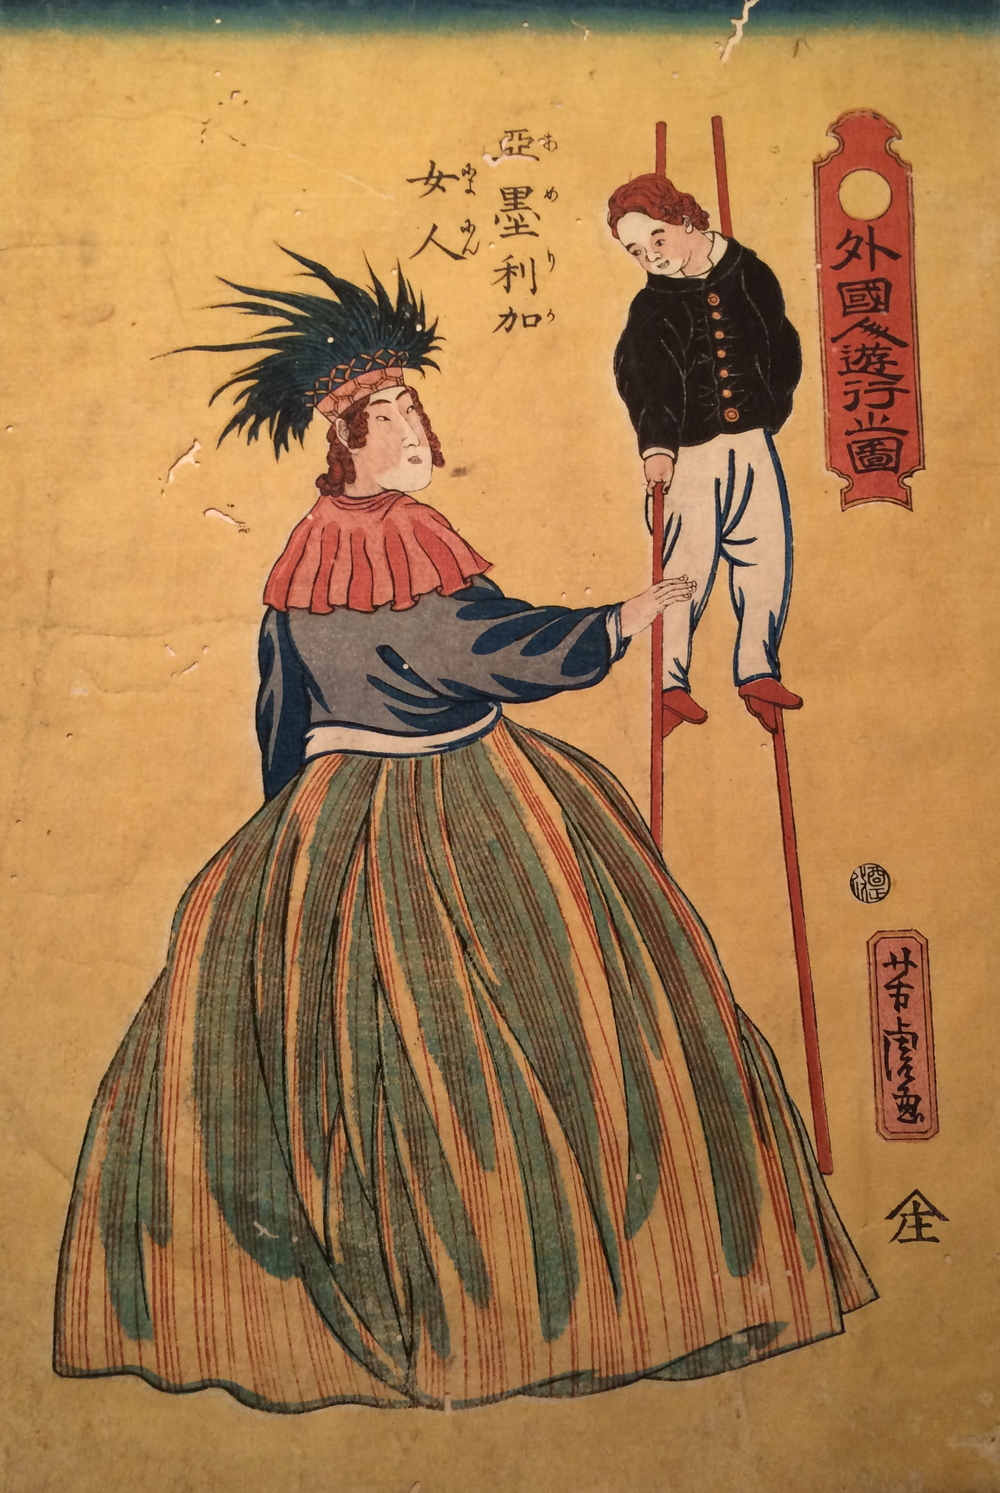 UTAGAWA YOSHITORA, American Woman with Her Child on Stilts, c. 1861, woodblock print